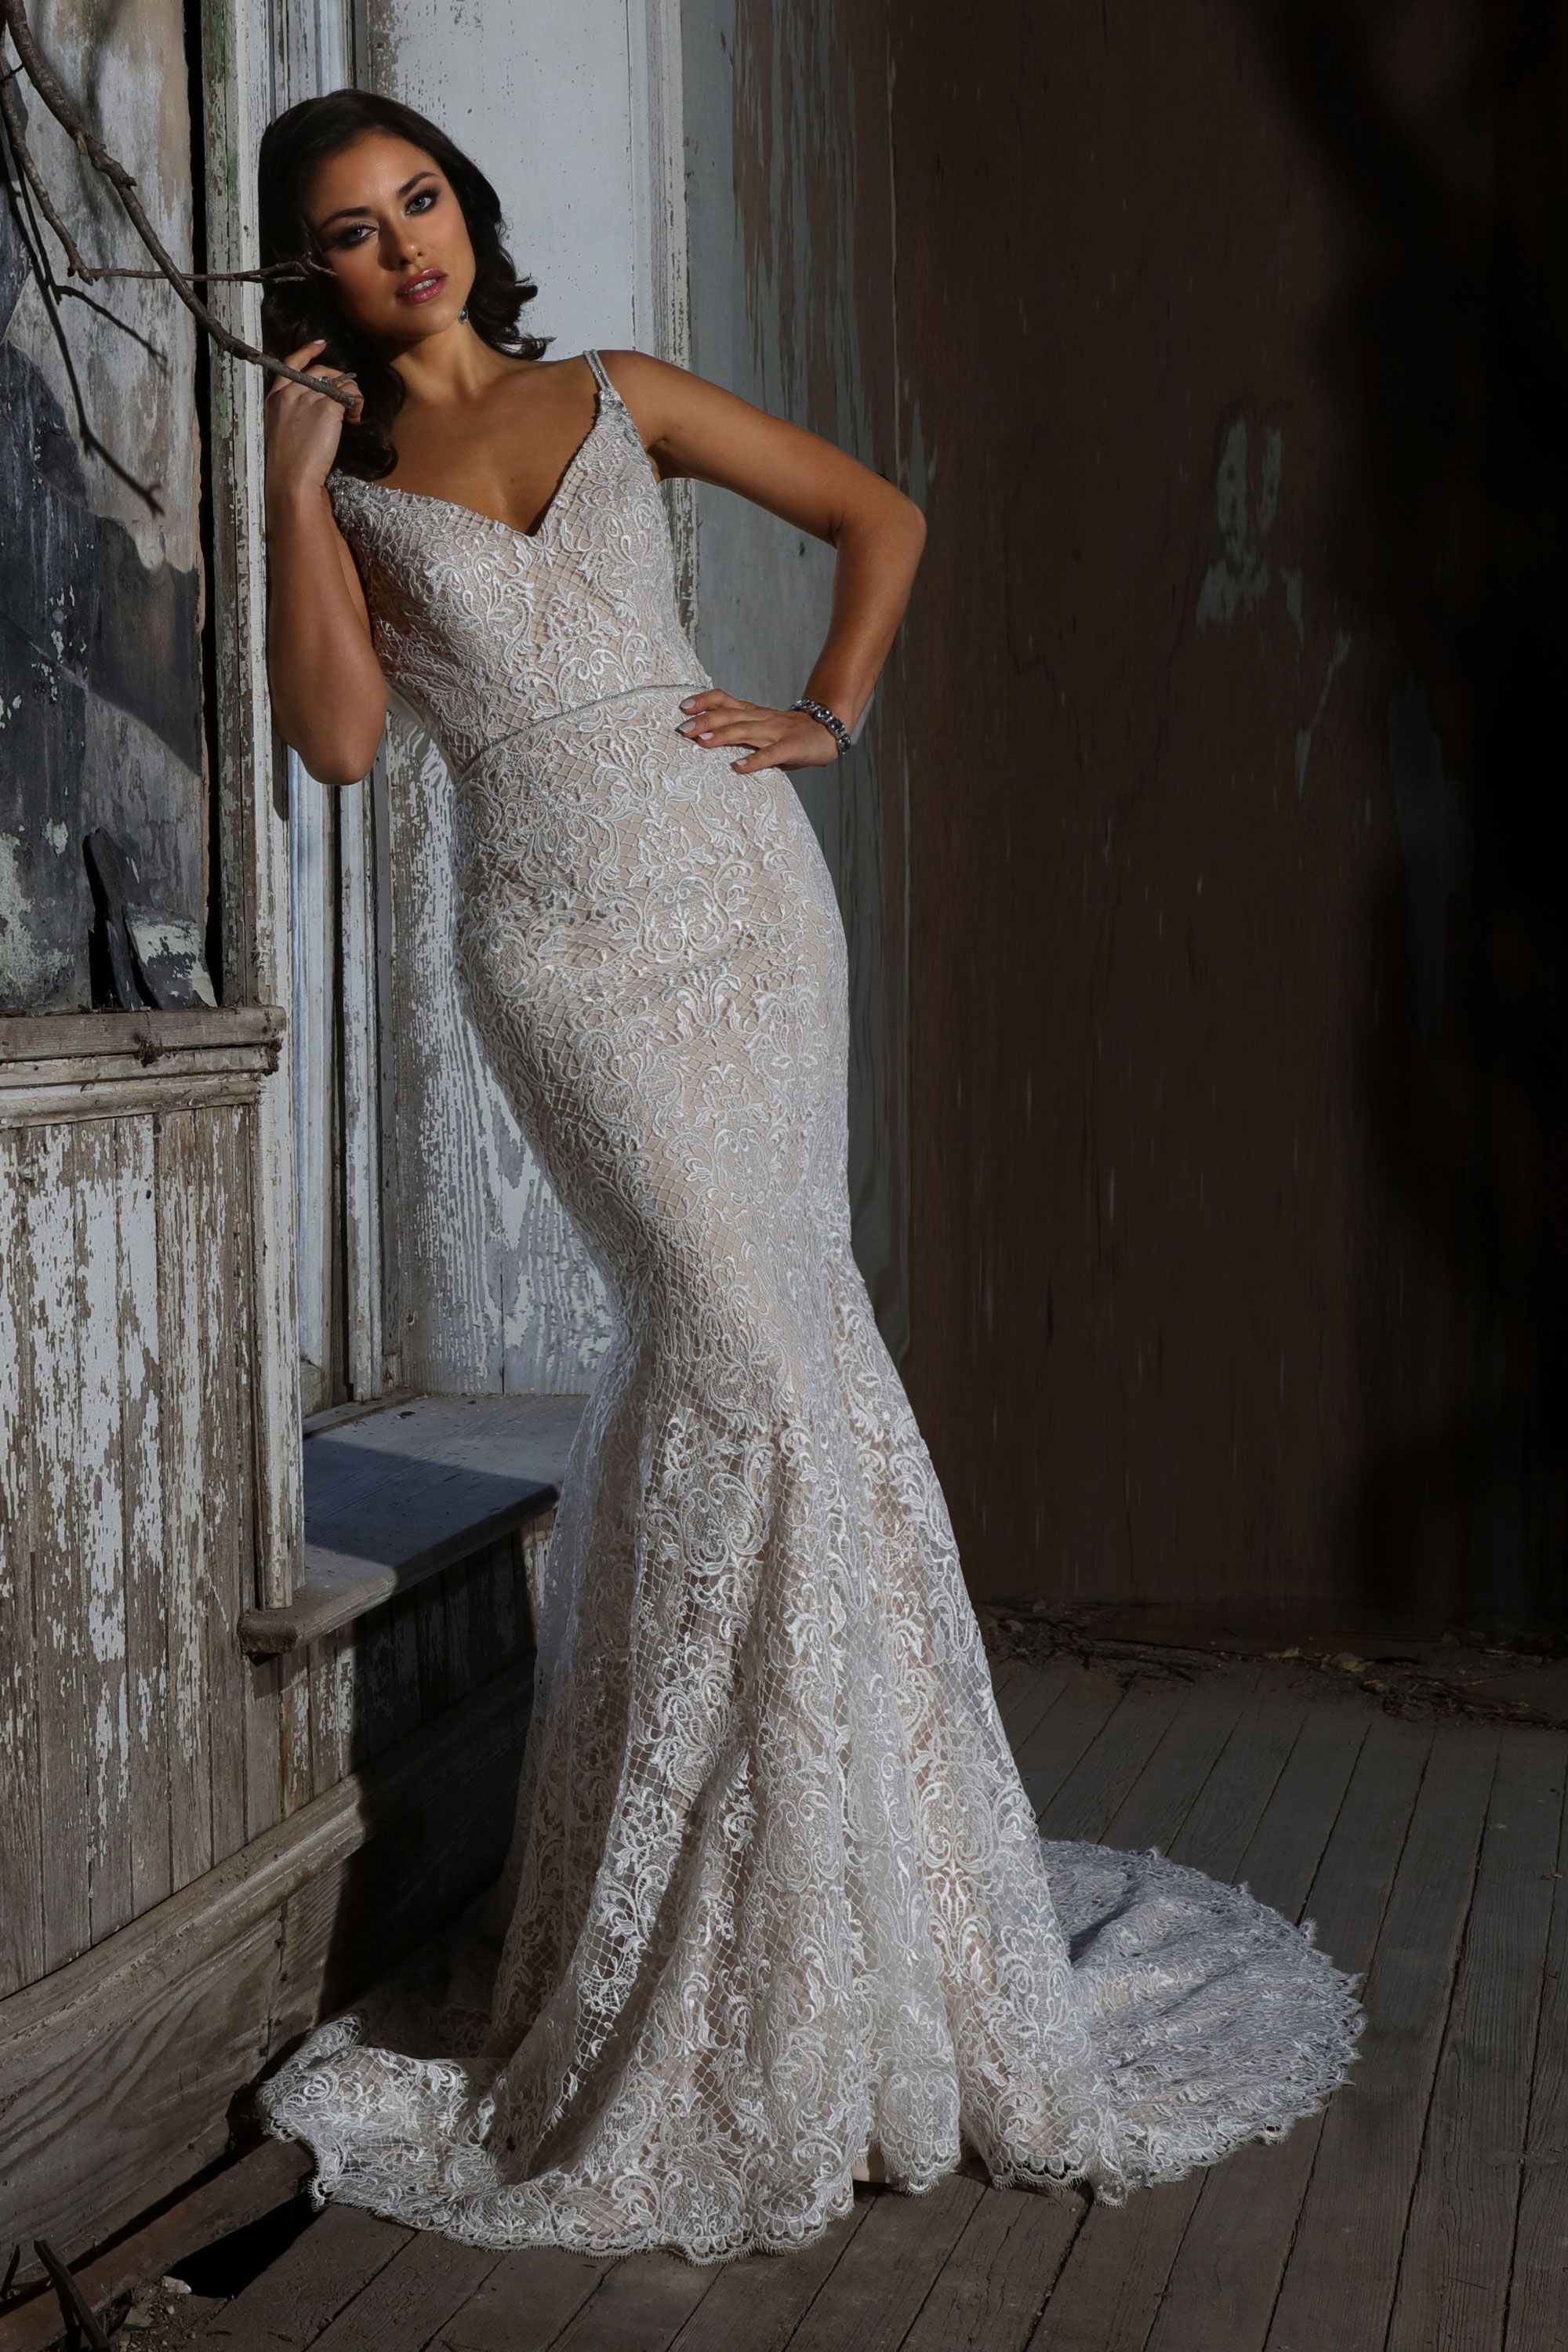 New View our beautiful timeless Cristiano Lucci Wedding Dress and Bridal Gown Collection available at our New York Bridal Salons